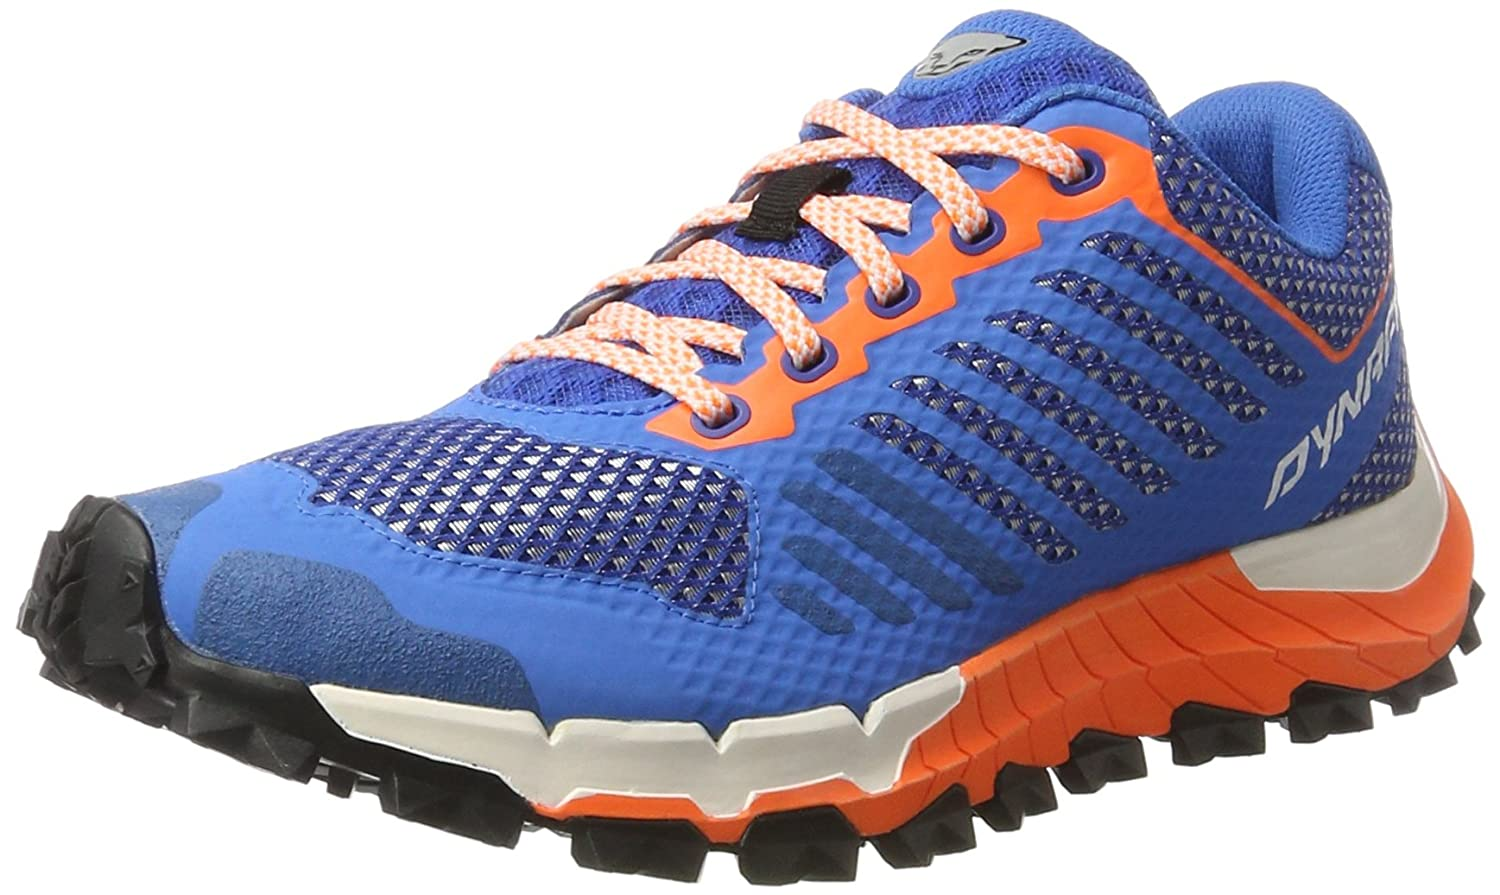 Dynafit TrailBreaker Bleu/Orange yioM9zyRwU